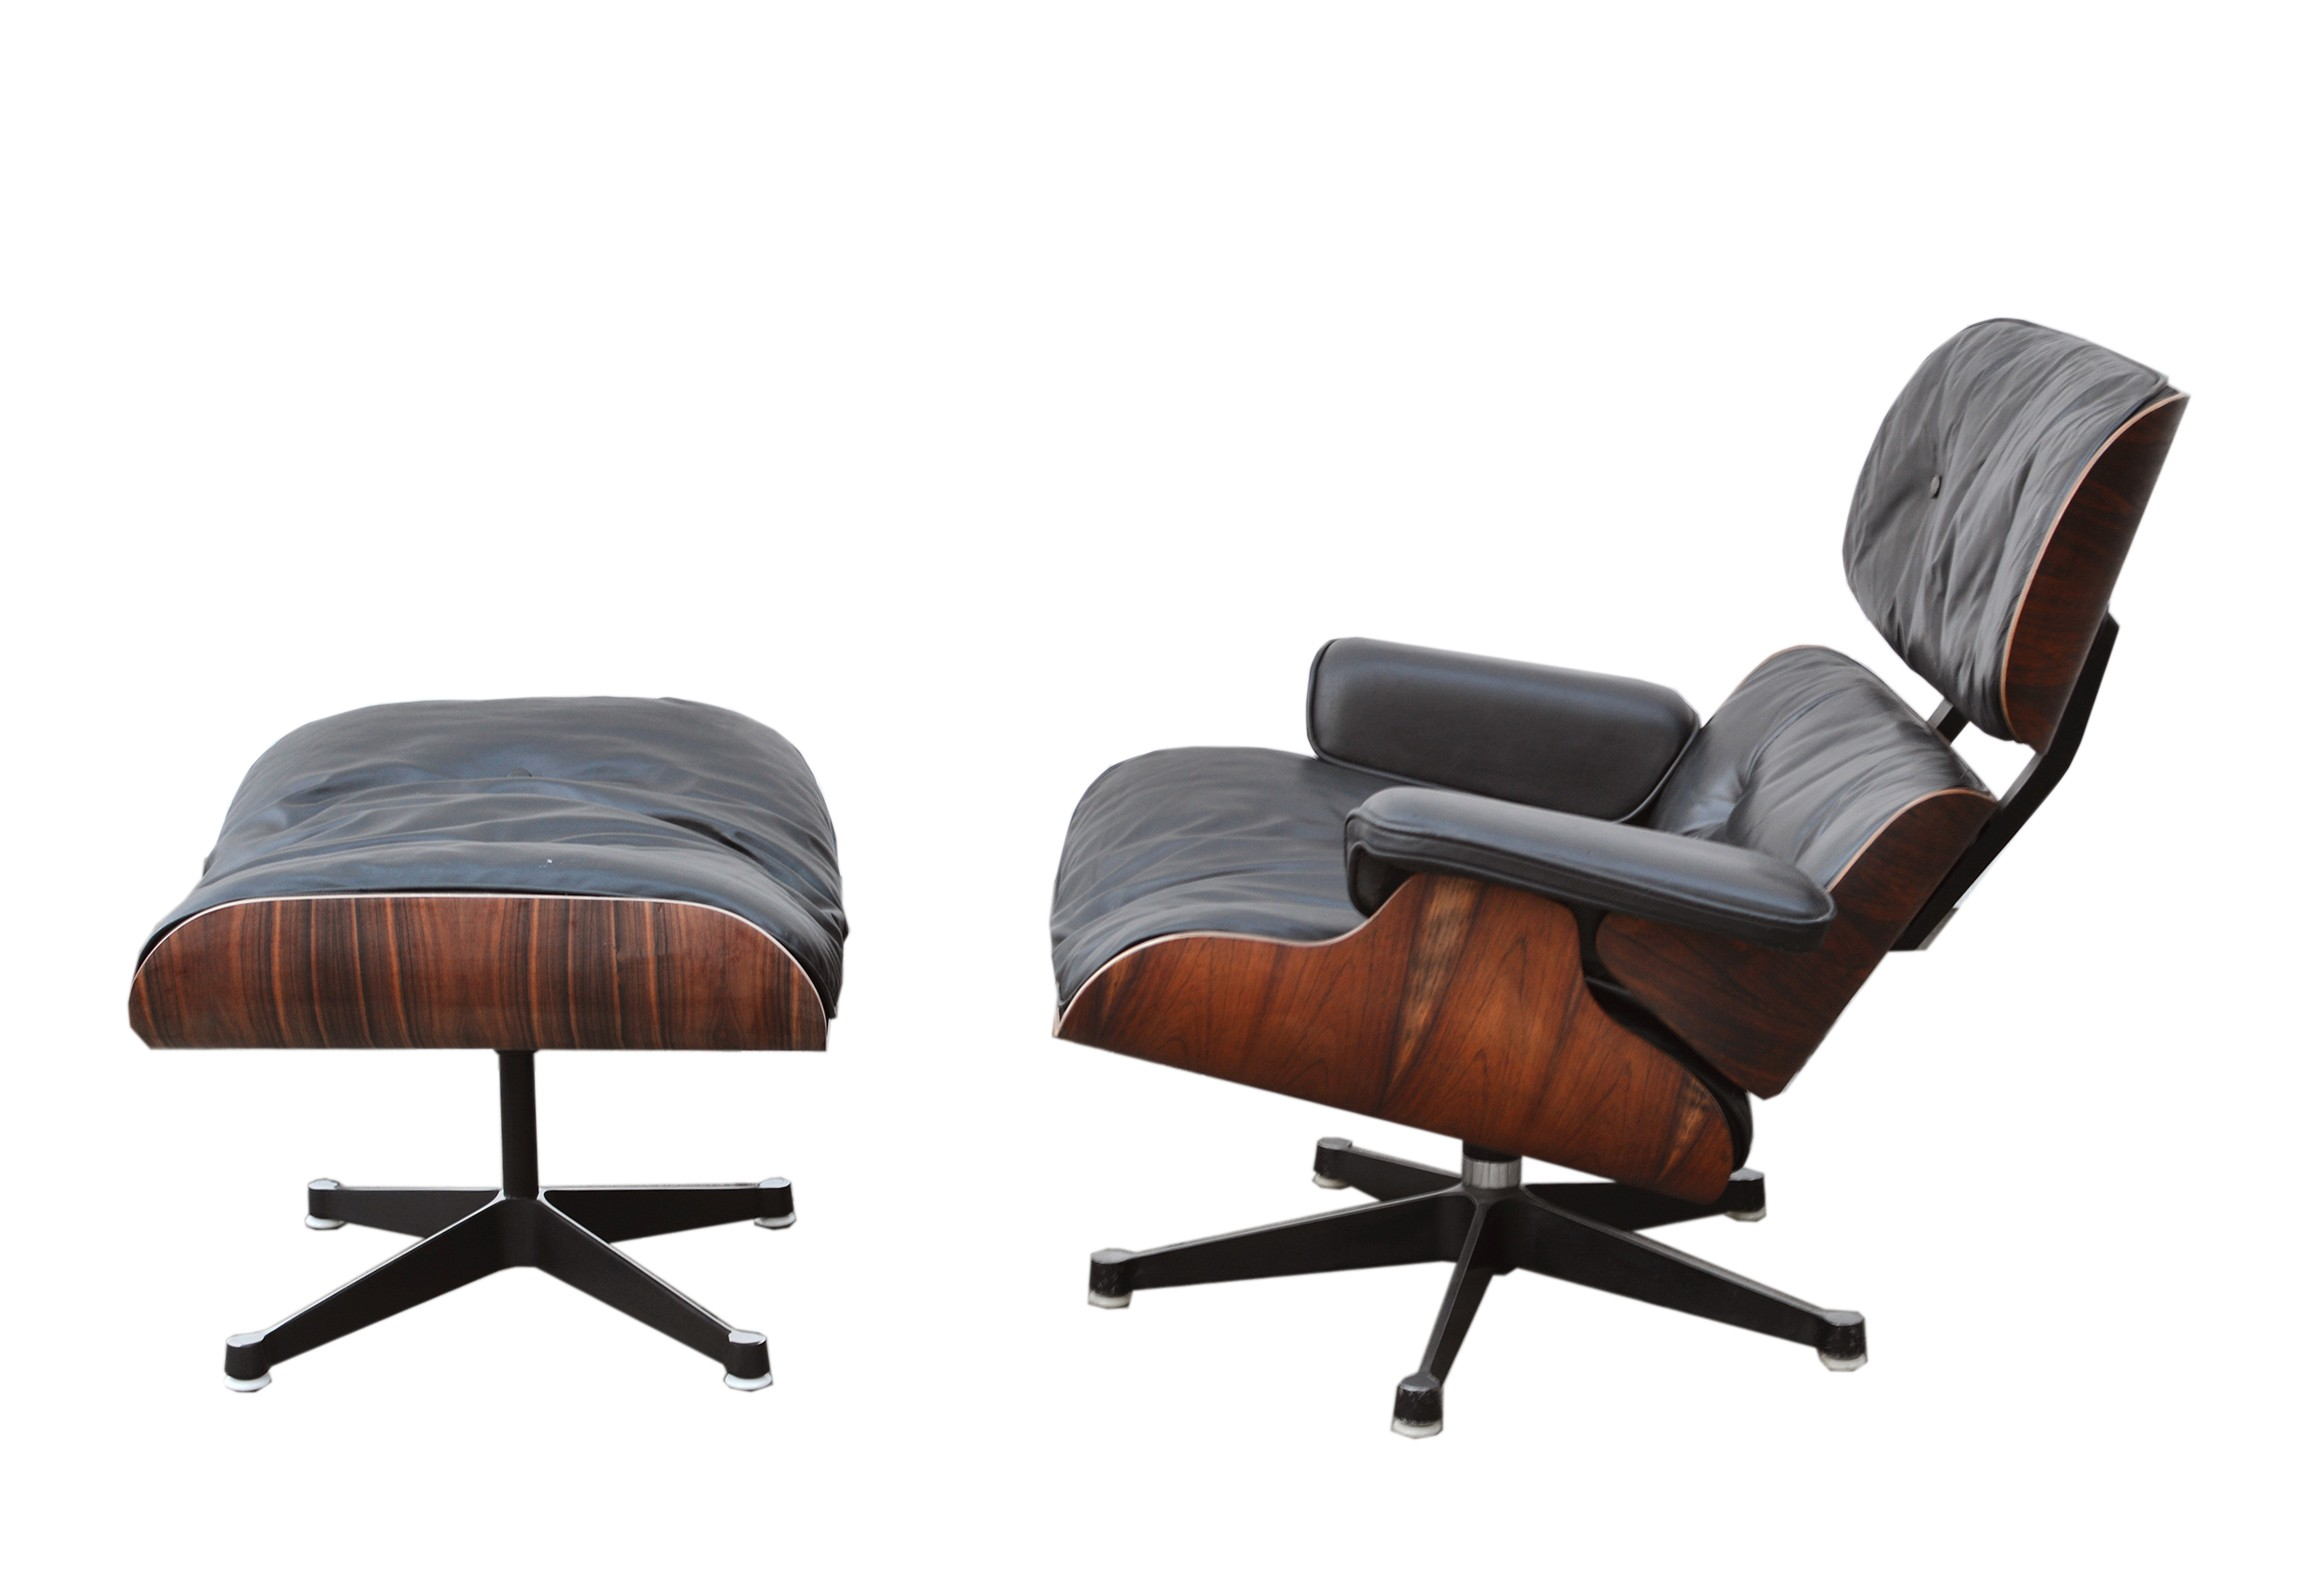 Vitra Chalres Eames : Vintage lounge chair & ottoman by charles eames for vitra 1980s